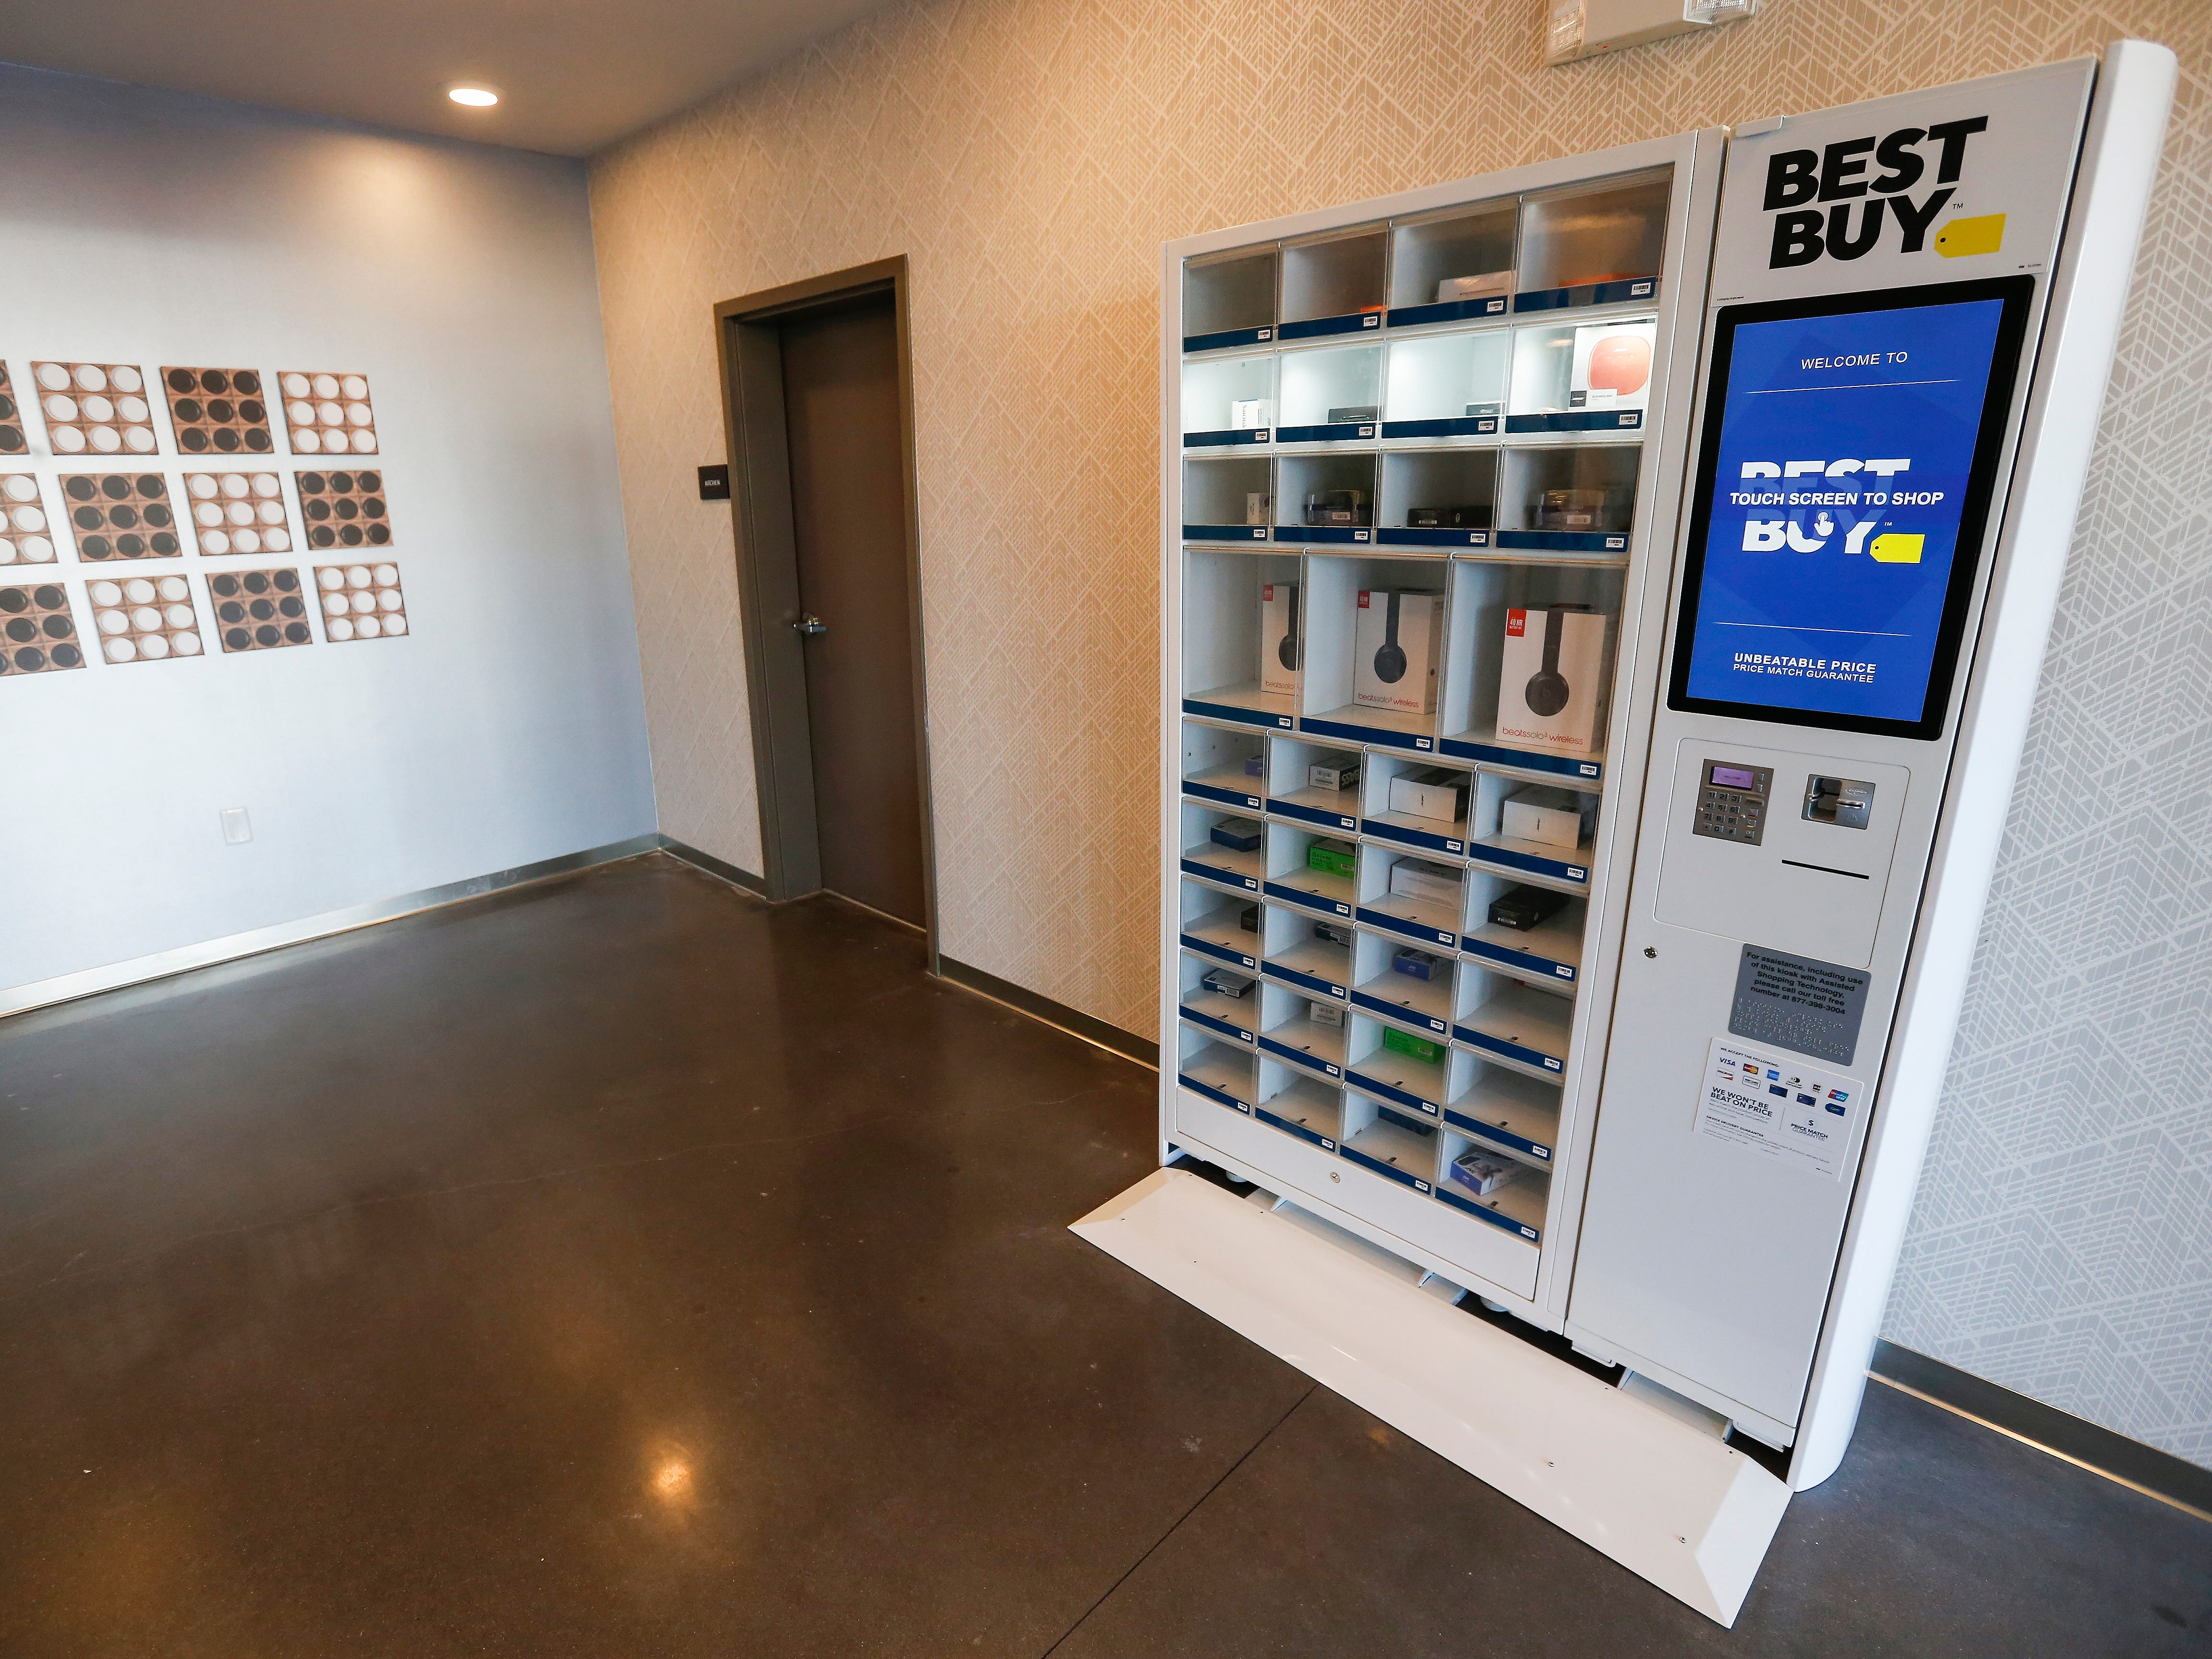 A Best Buy kiosk is located by the elevators in the lobby of the Vib Hotel. Headphones, flash drives, usb cables and more are for sale. The hotel will hold its grand opening on Friday, Aug. 10, 2018.